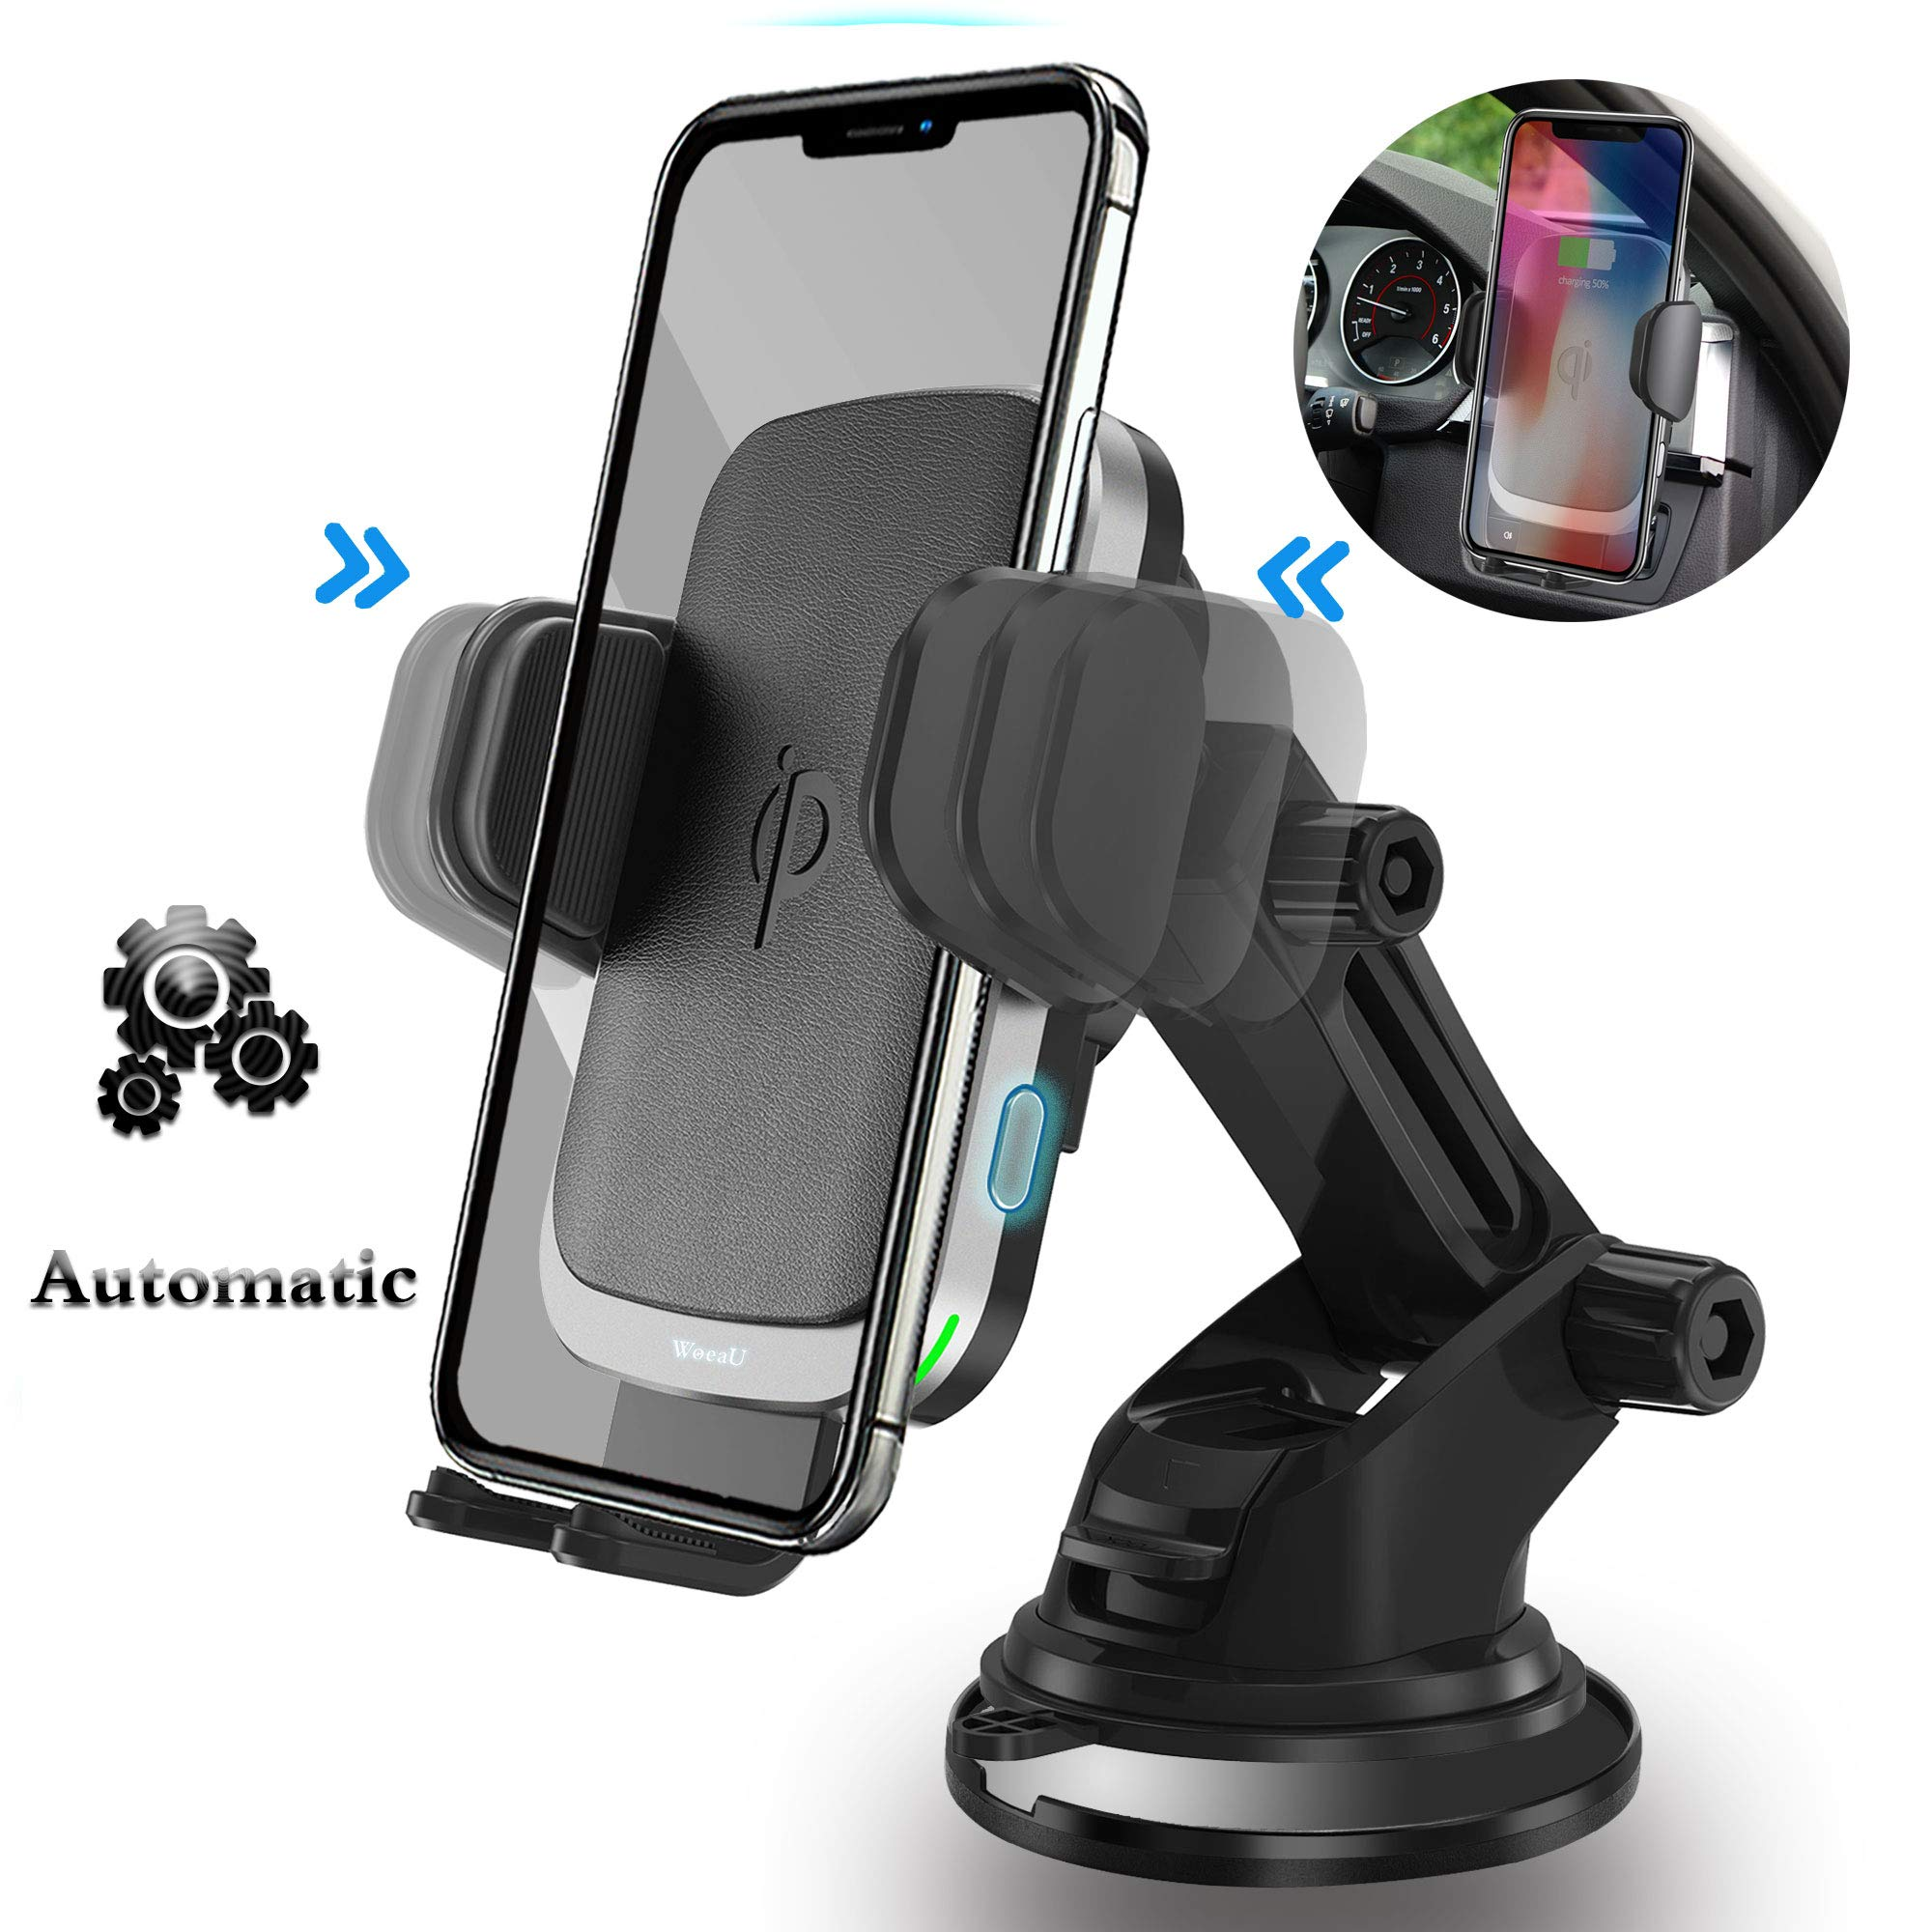 Woeau Wireless Car Charger Mount,Automatic Clamping QI Fast 10W 7.5W & 5W Charging,Windshield Dashboard And Air Vent Phone Holder,Compatible iPhone X/Max/Xs/XR/8 Plus,Samsung Galaxy S10 /S9/S8+ note 8 by Woeau